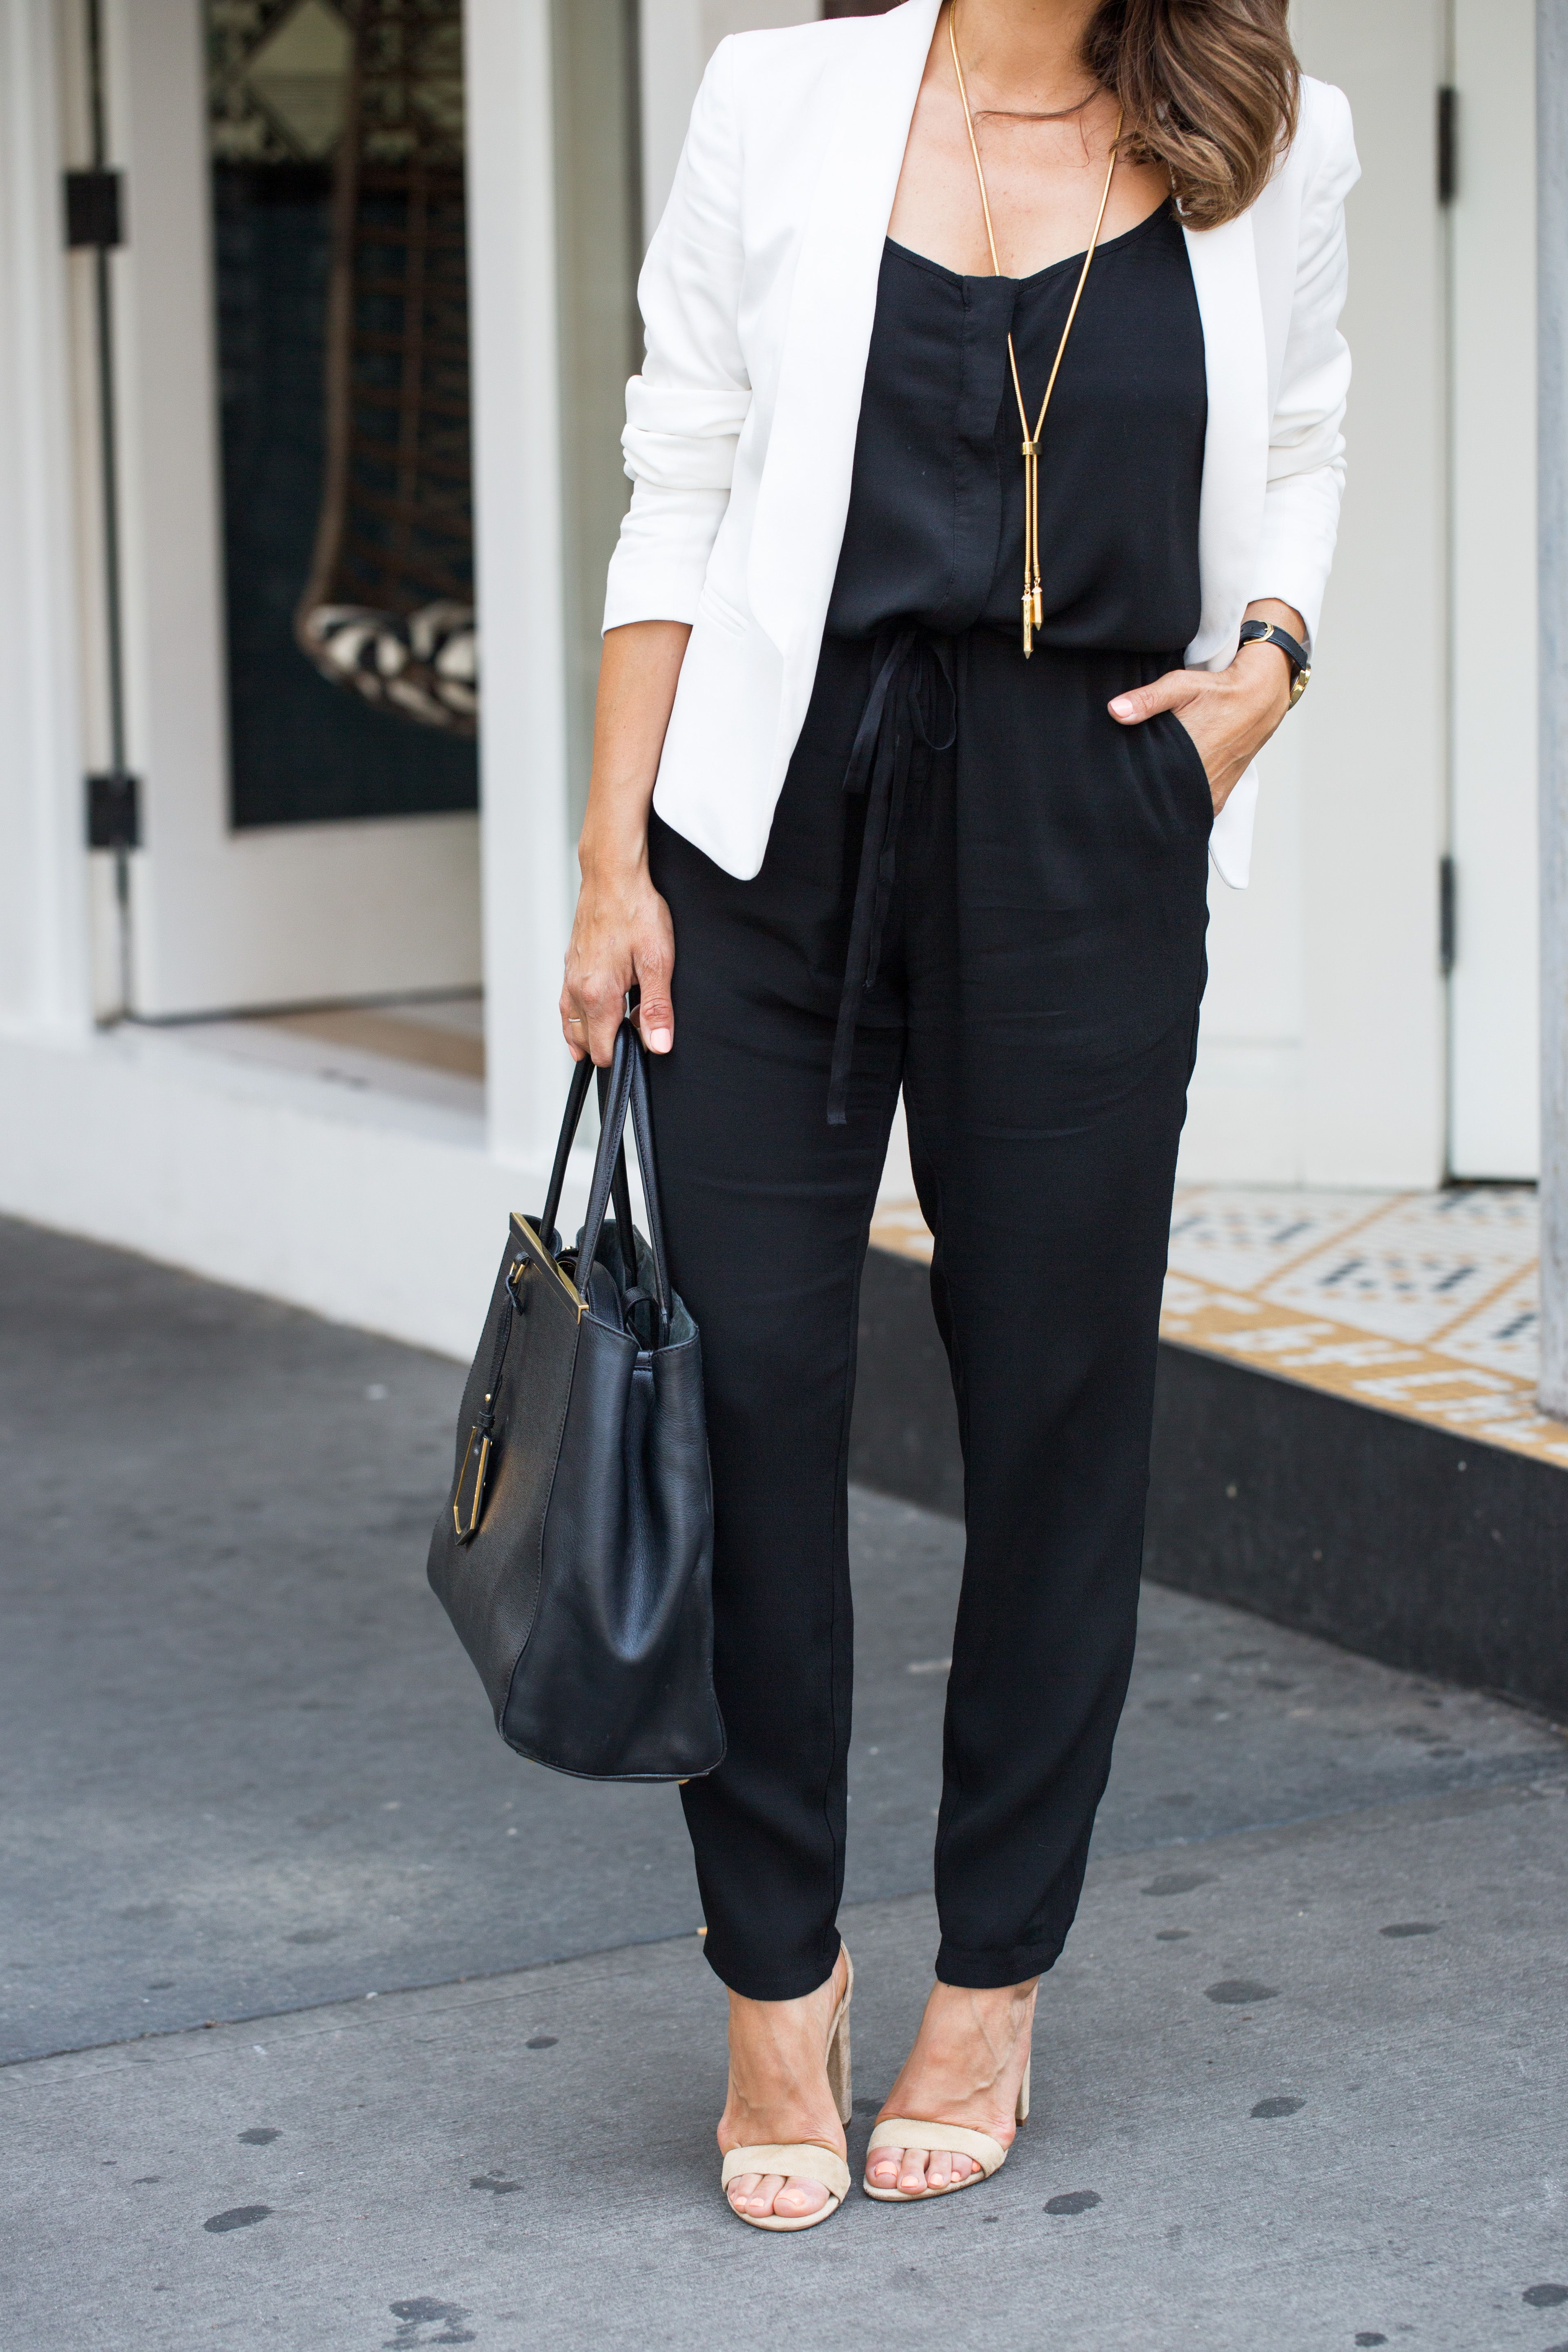 How To Wear A Black Jumpsuit To Work With A White Blazer